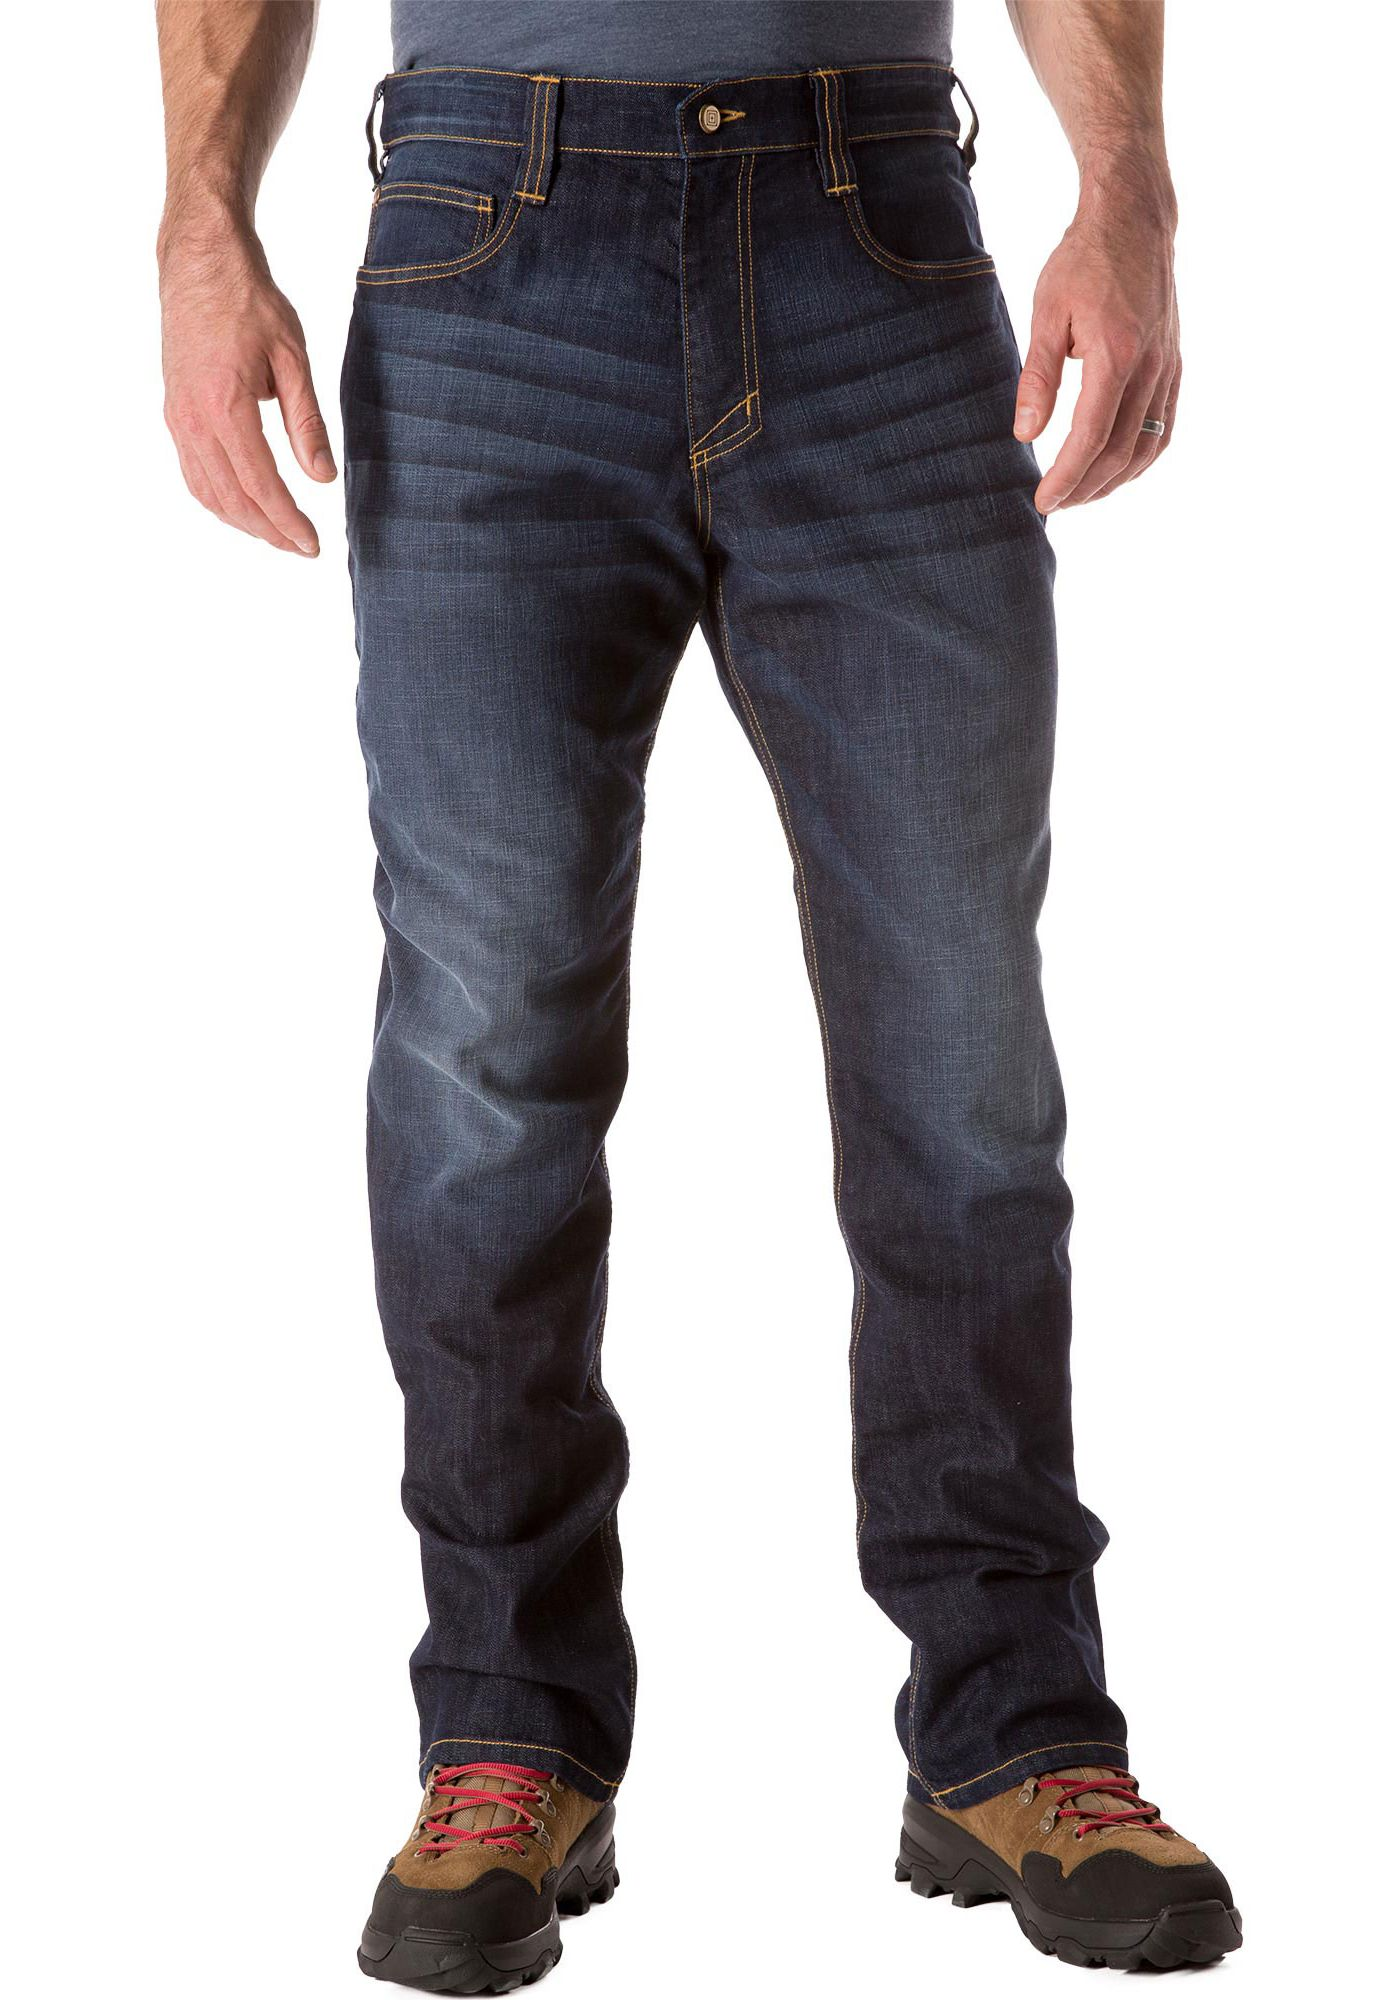 5.11 Men's Defender-Flex Straight Leg Jeans